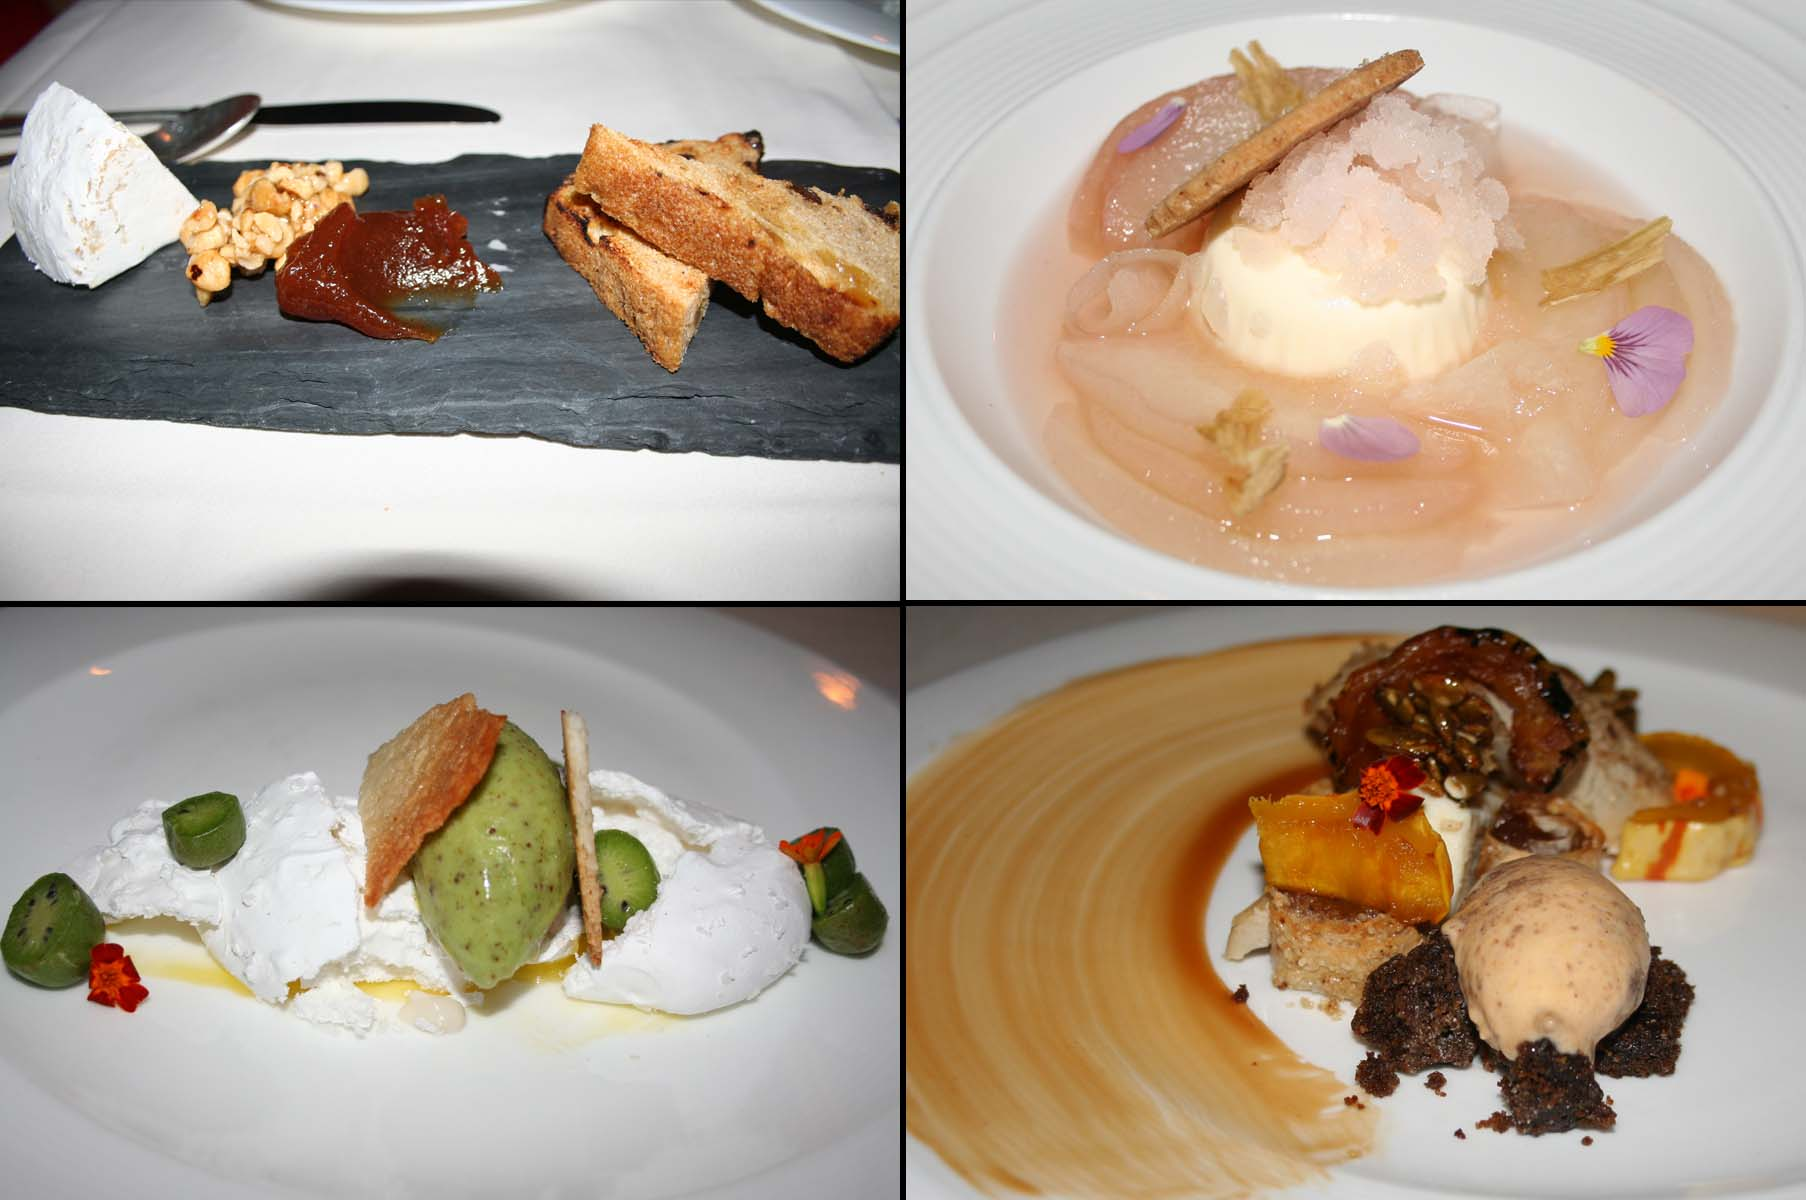 The cheese course included a soft Kunik (top left), while desserts included rose poached pear (clockwise from top right), pumpkin walnut strudel and kiwi-berry pavlova. (Photos: Mark Heckathorn/DC on Heels),